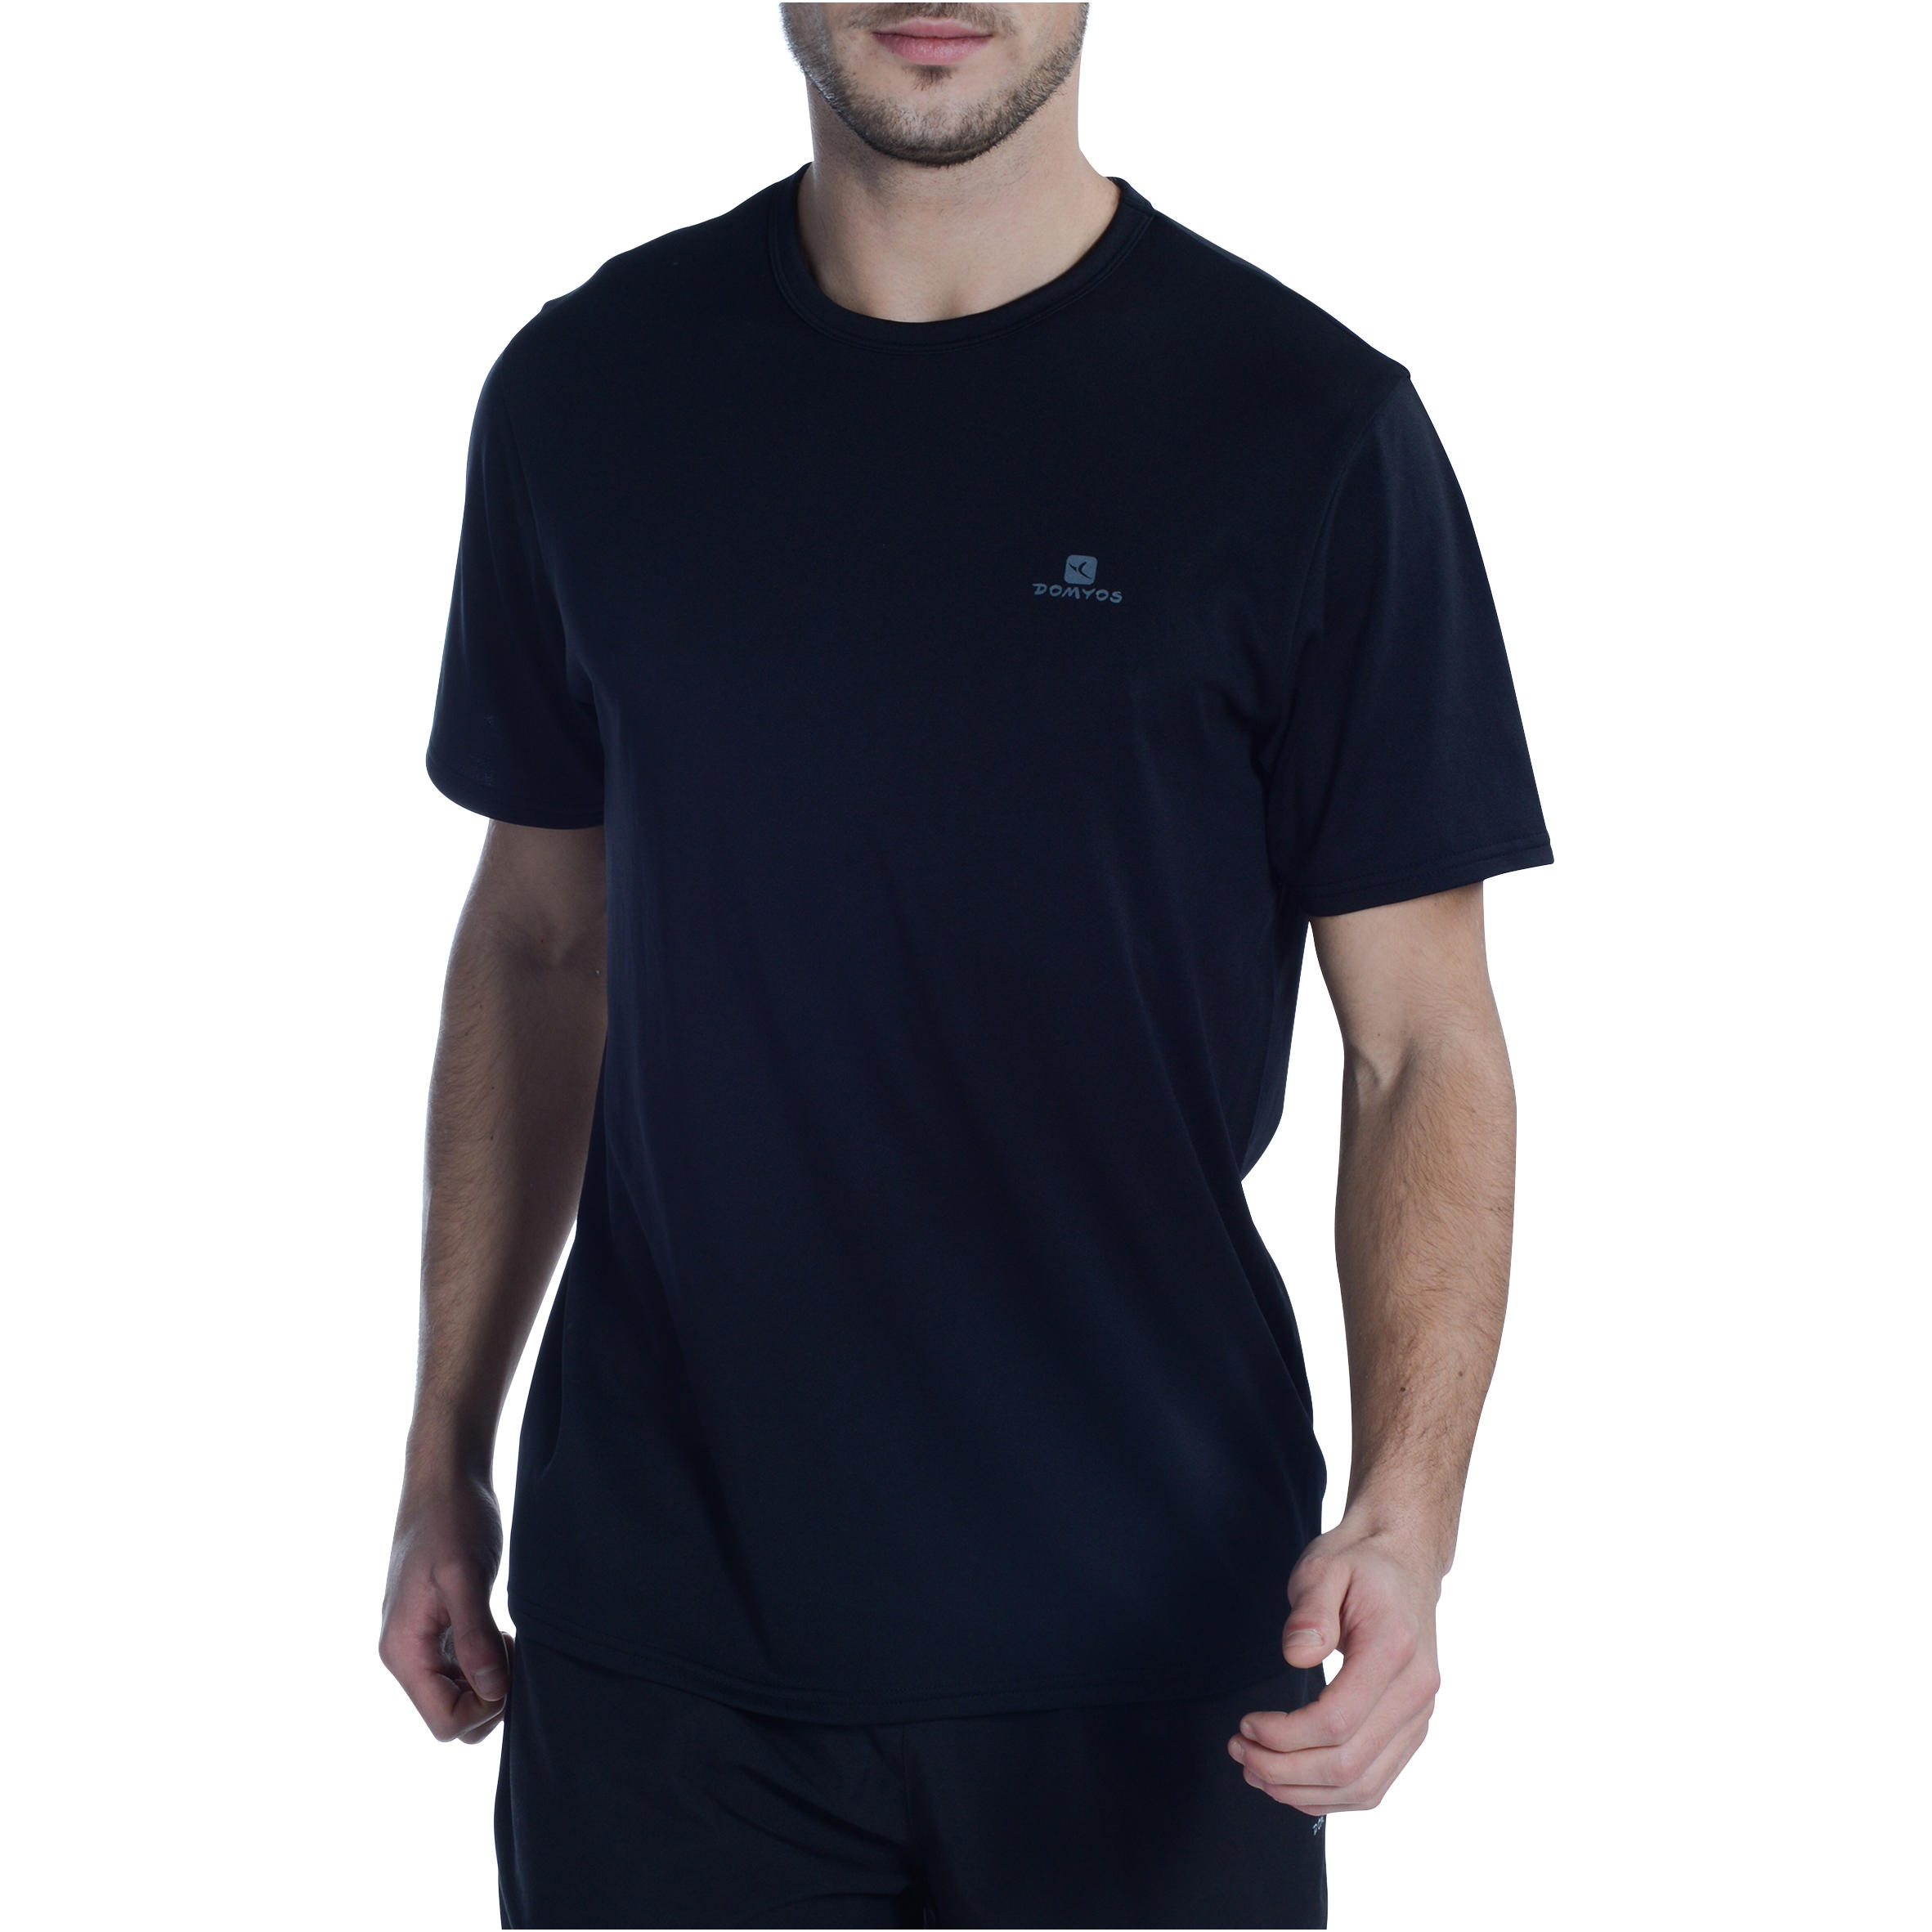 Energy Fitness and Cardio T-Shirt - Black